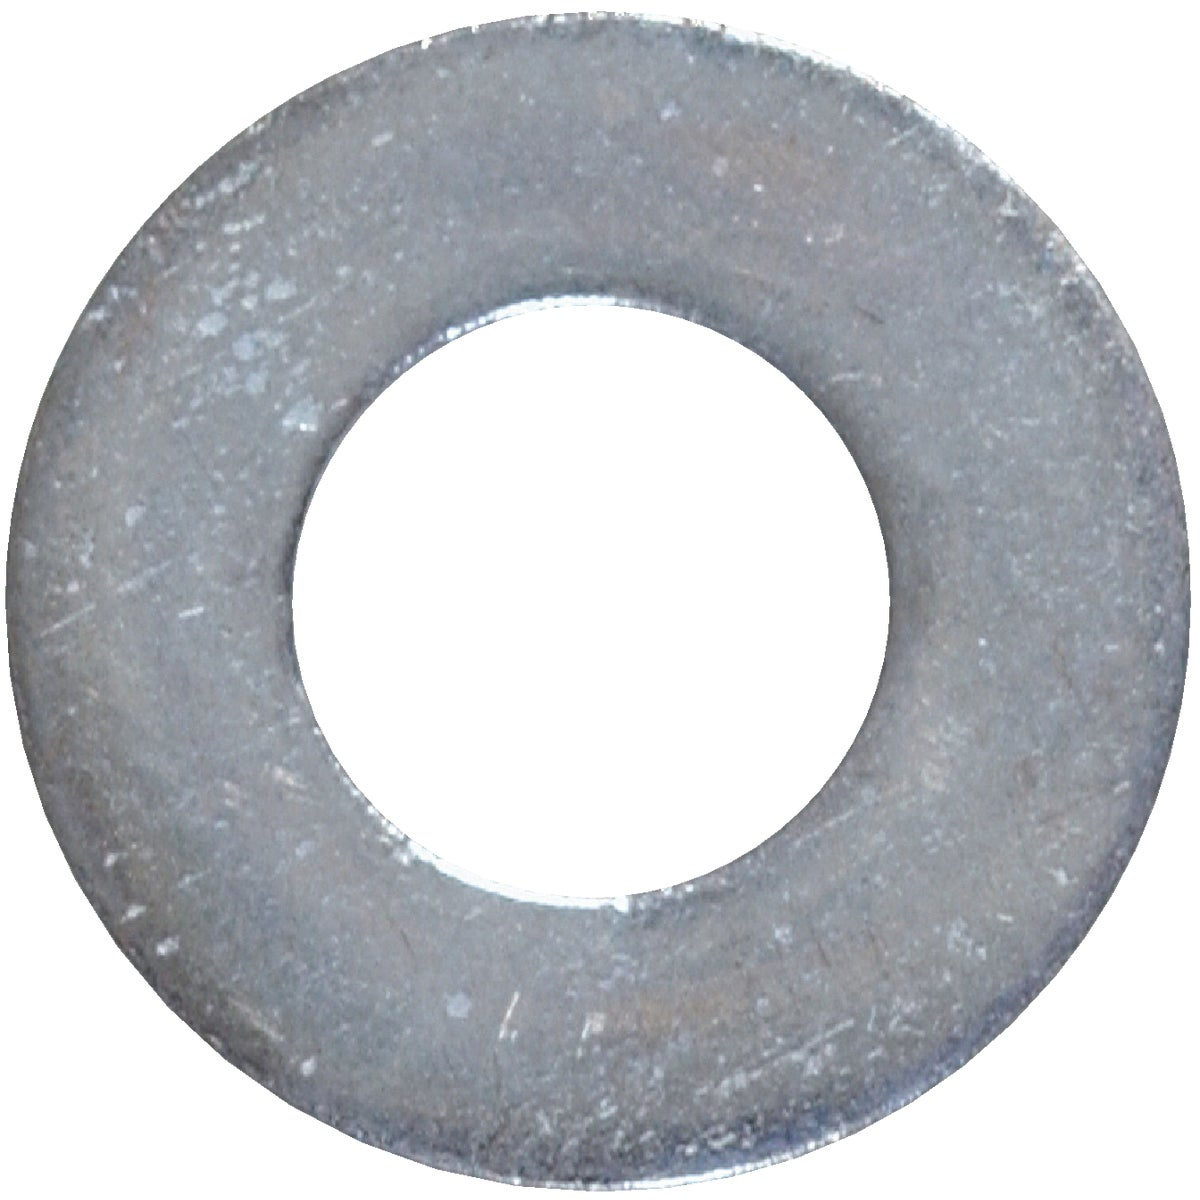 "5/16"" USS FLAT WASHER - 811071 by Hillman Fastener"